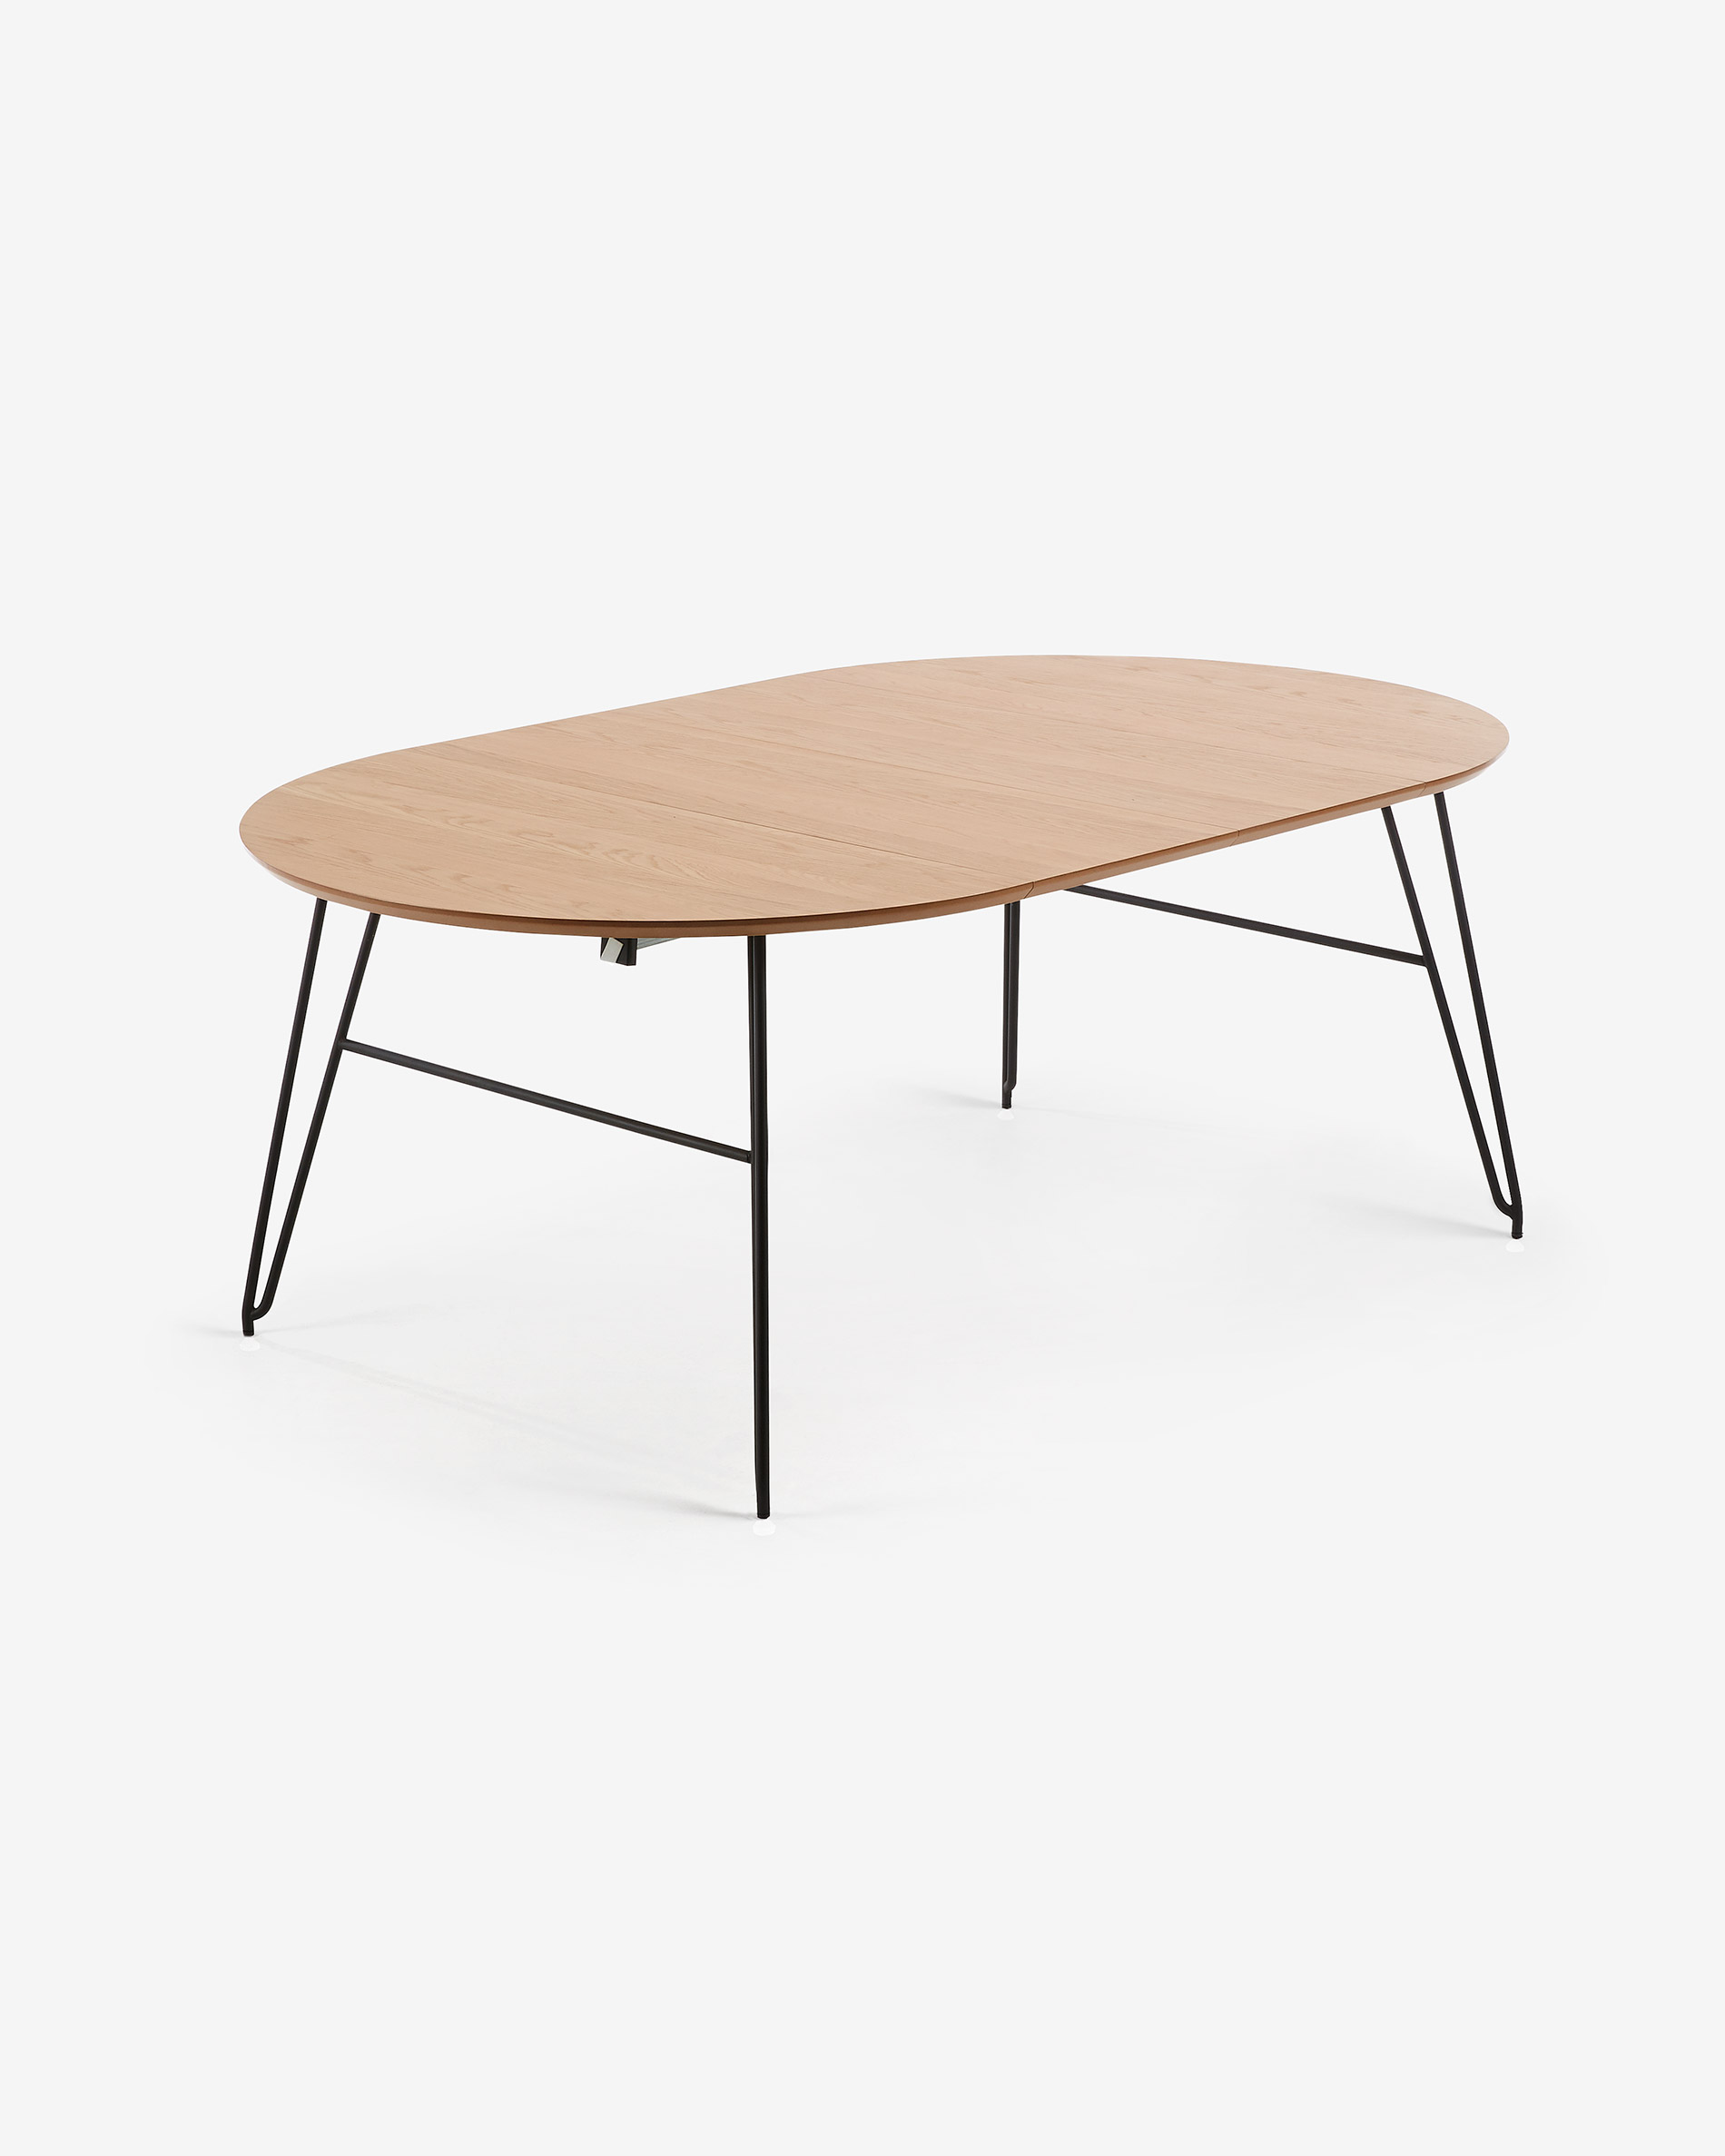 Table solde Luxe Tables Extensibles Of 40 Frais Table solde